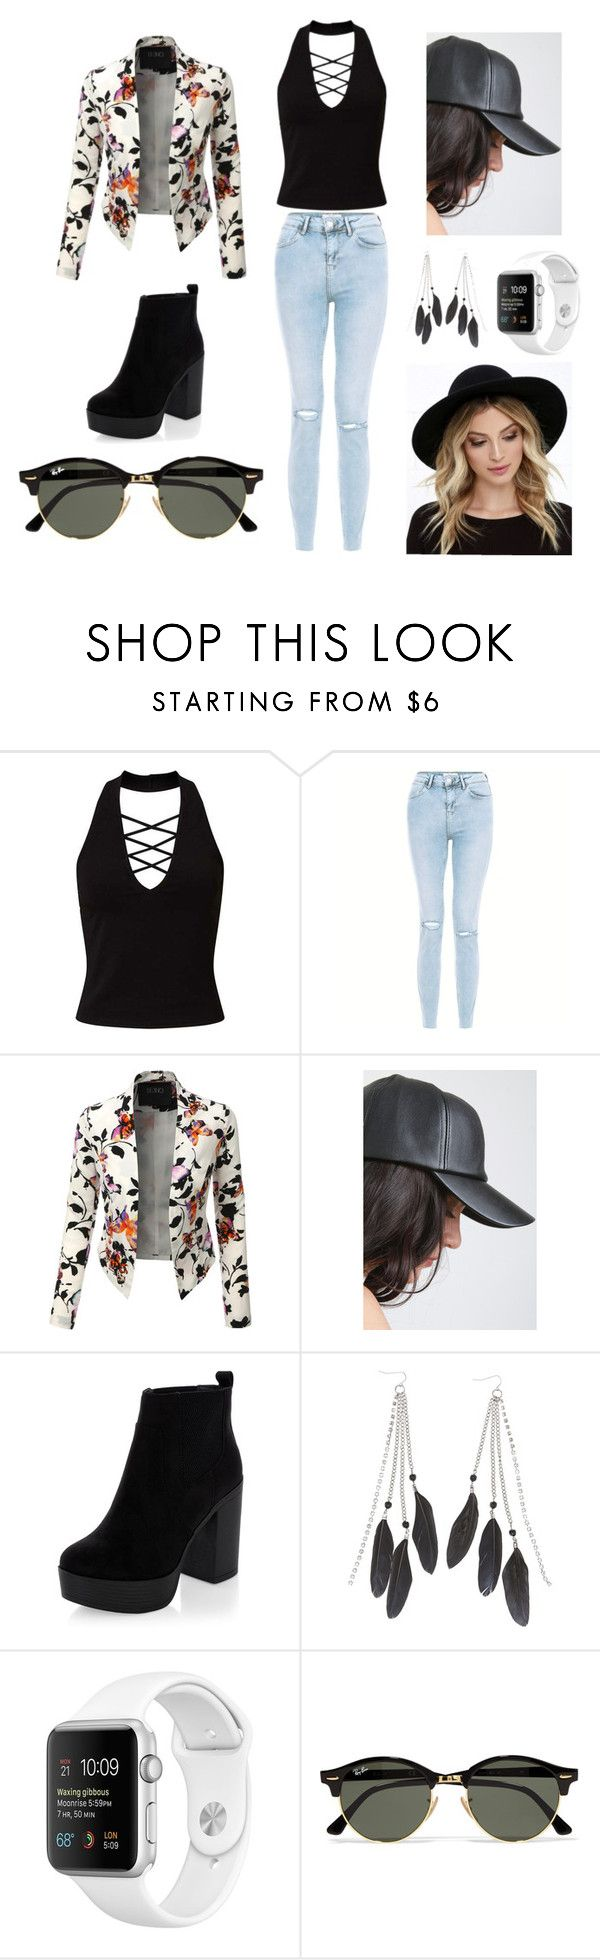 Best Freinds by jayjayjones2002 on Polyvore featuring Miss Selfridge, LE3NO, New Look, Charlotte Russe, RHYTHM and Ray-Ban